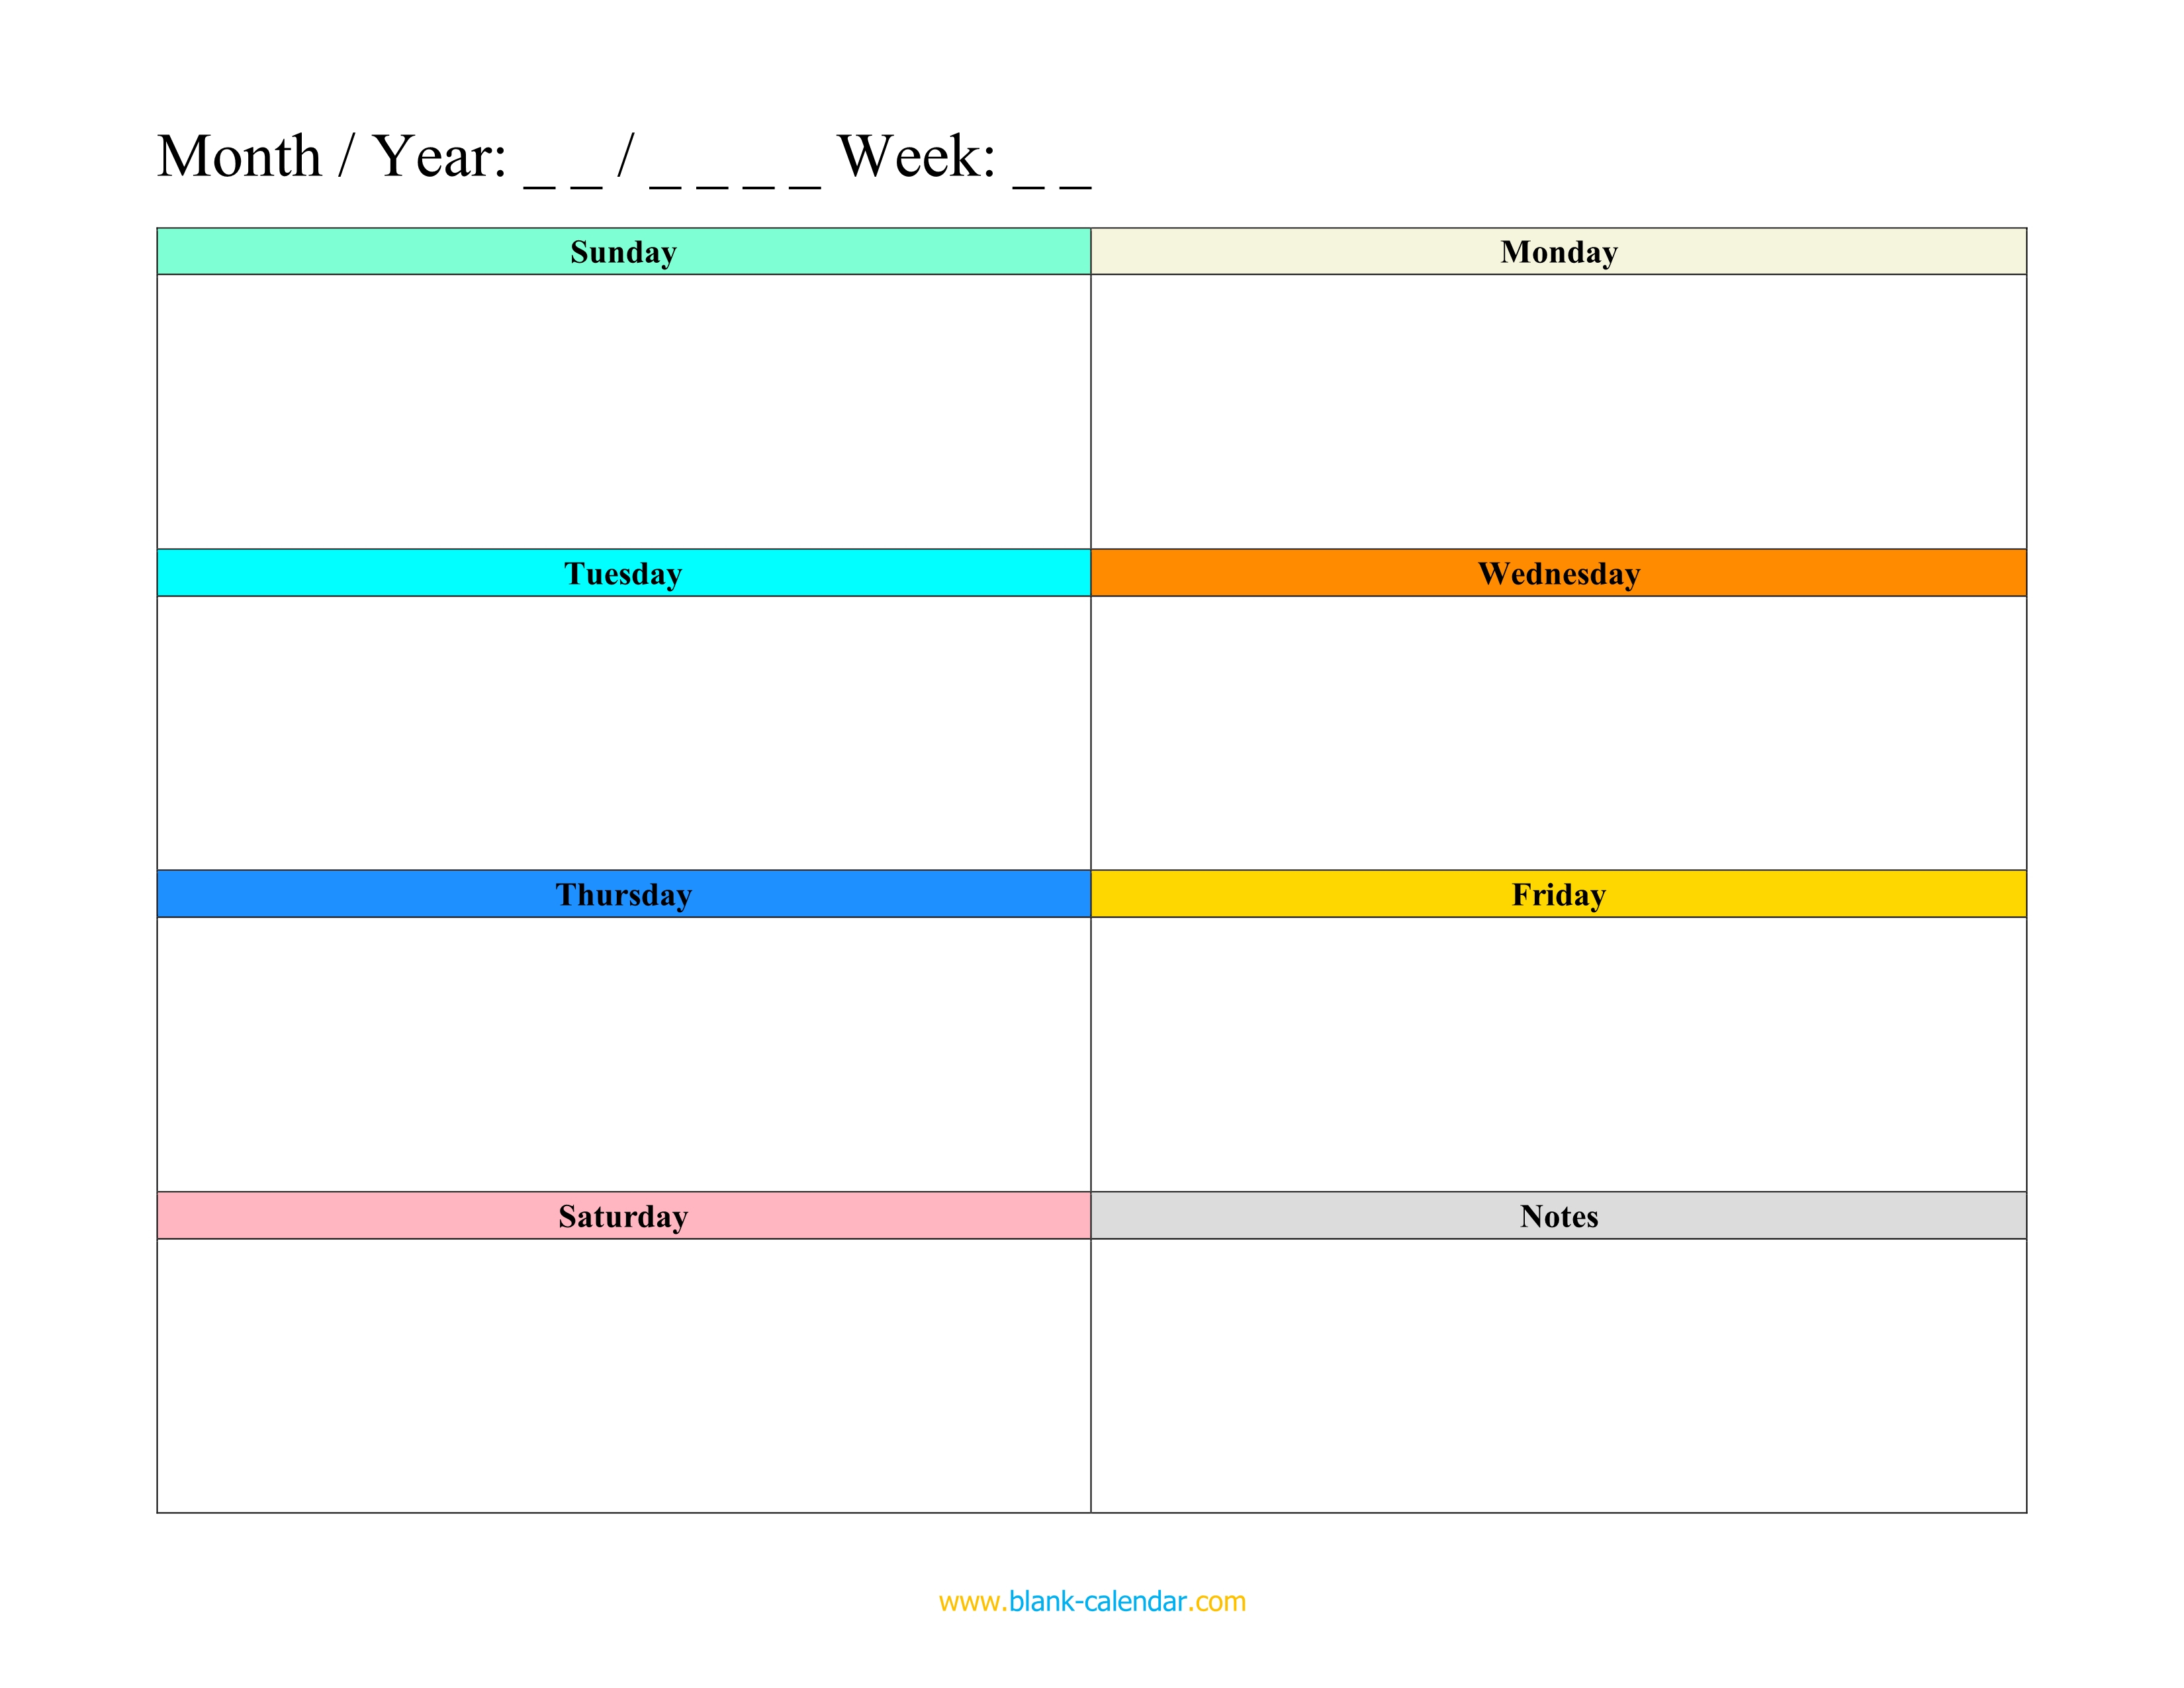 Free Lesson Plan Template Word Doc Monthly Meal Planner Calendar regarding Weekly Calander Lesson Plan Template